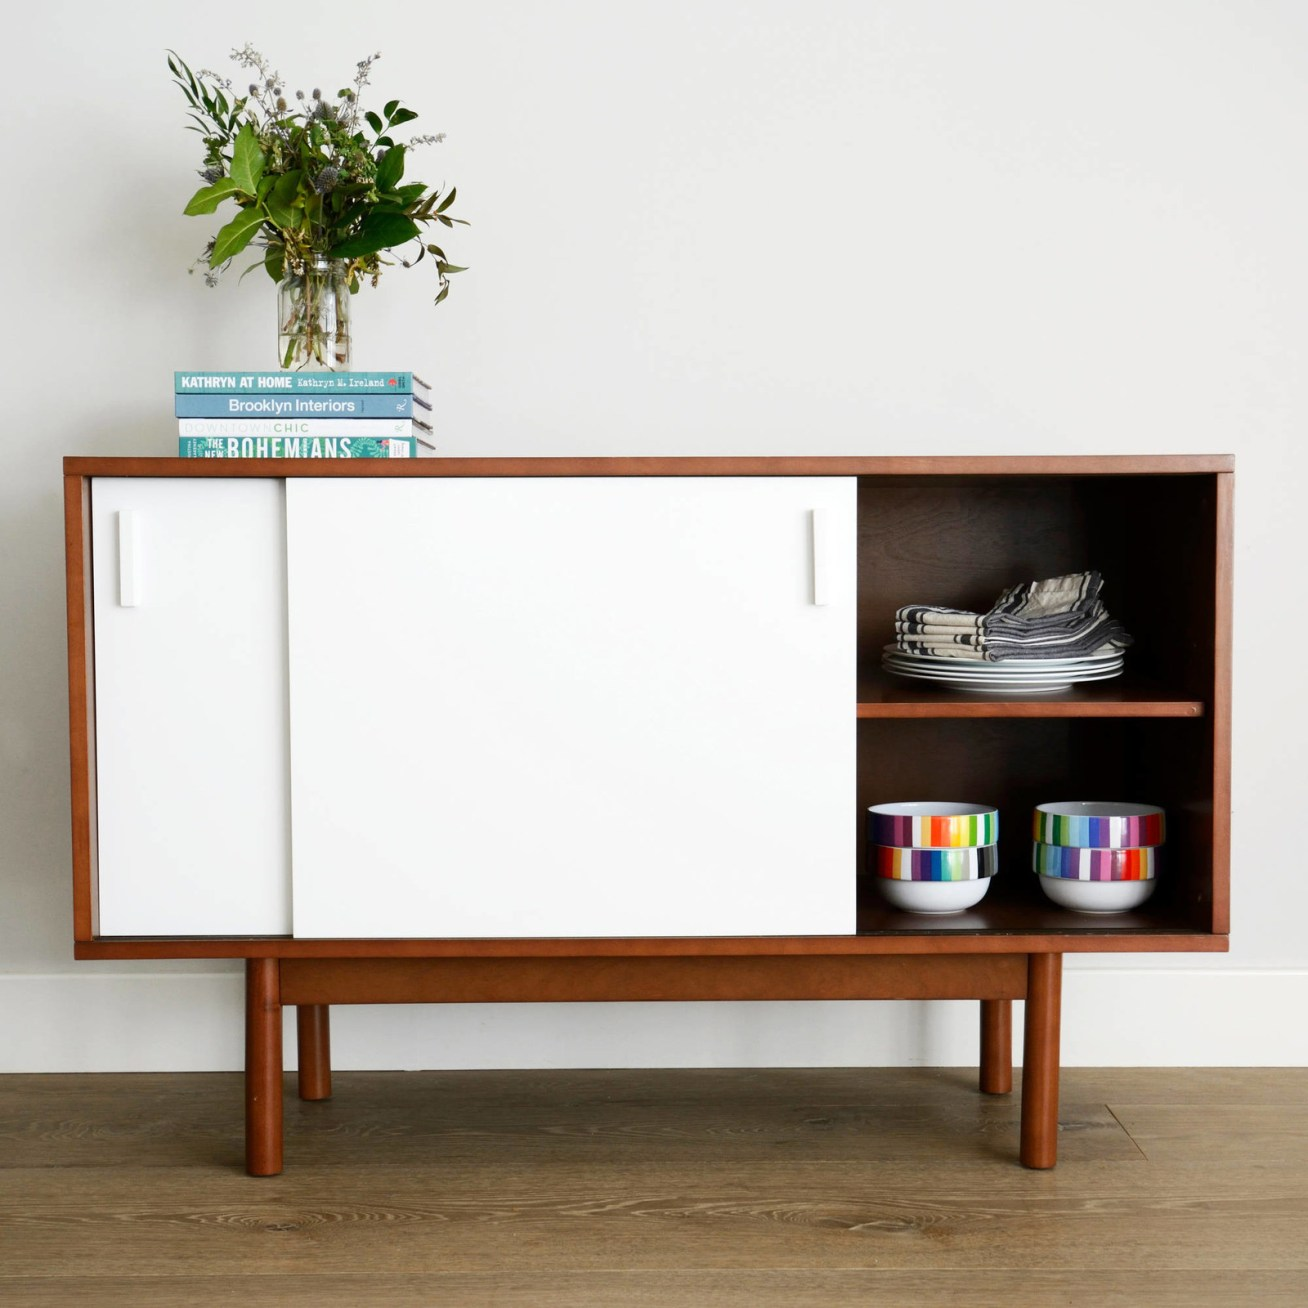 "Promising review: ""I thought I would have to spend 0+ on something that would satisfy my needs, but not really the look I wanted. I was thrilled when I came across this credenza for far less than 0. I am a 50-year-old woman and put this together by myself in much less time than other projects I've tackled. This credenza is very sturdy and offers a lot of useful storage space for the size. I love the clean, simple look that blends well with a large wood daybed and brass and glass desk I have in the same room. If you are looking for a very functional piece of furniture at an extremely low price, don't hesitate to take a chance with this. It will not disappoint!!"" —BethPrice: 9.98"